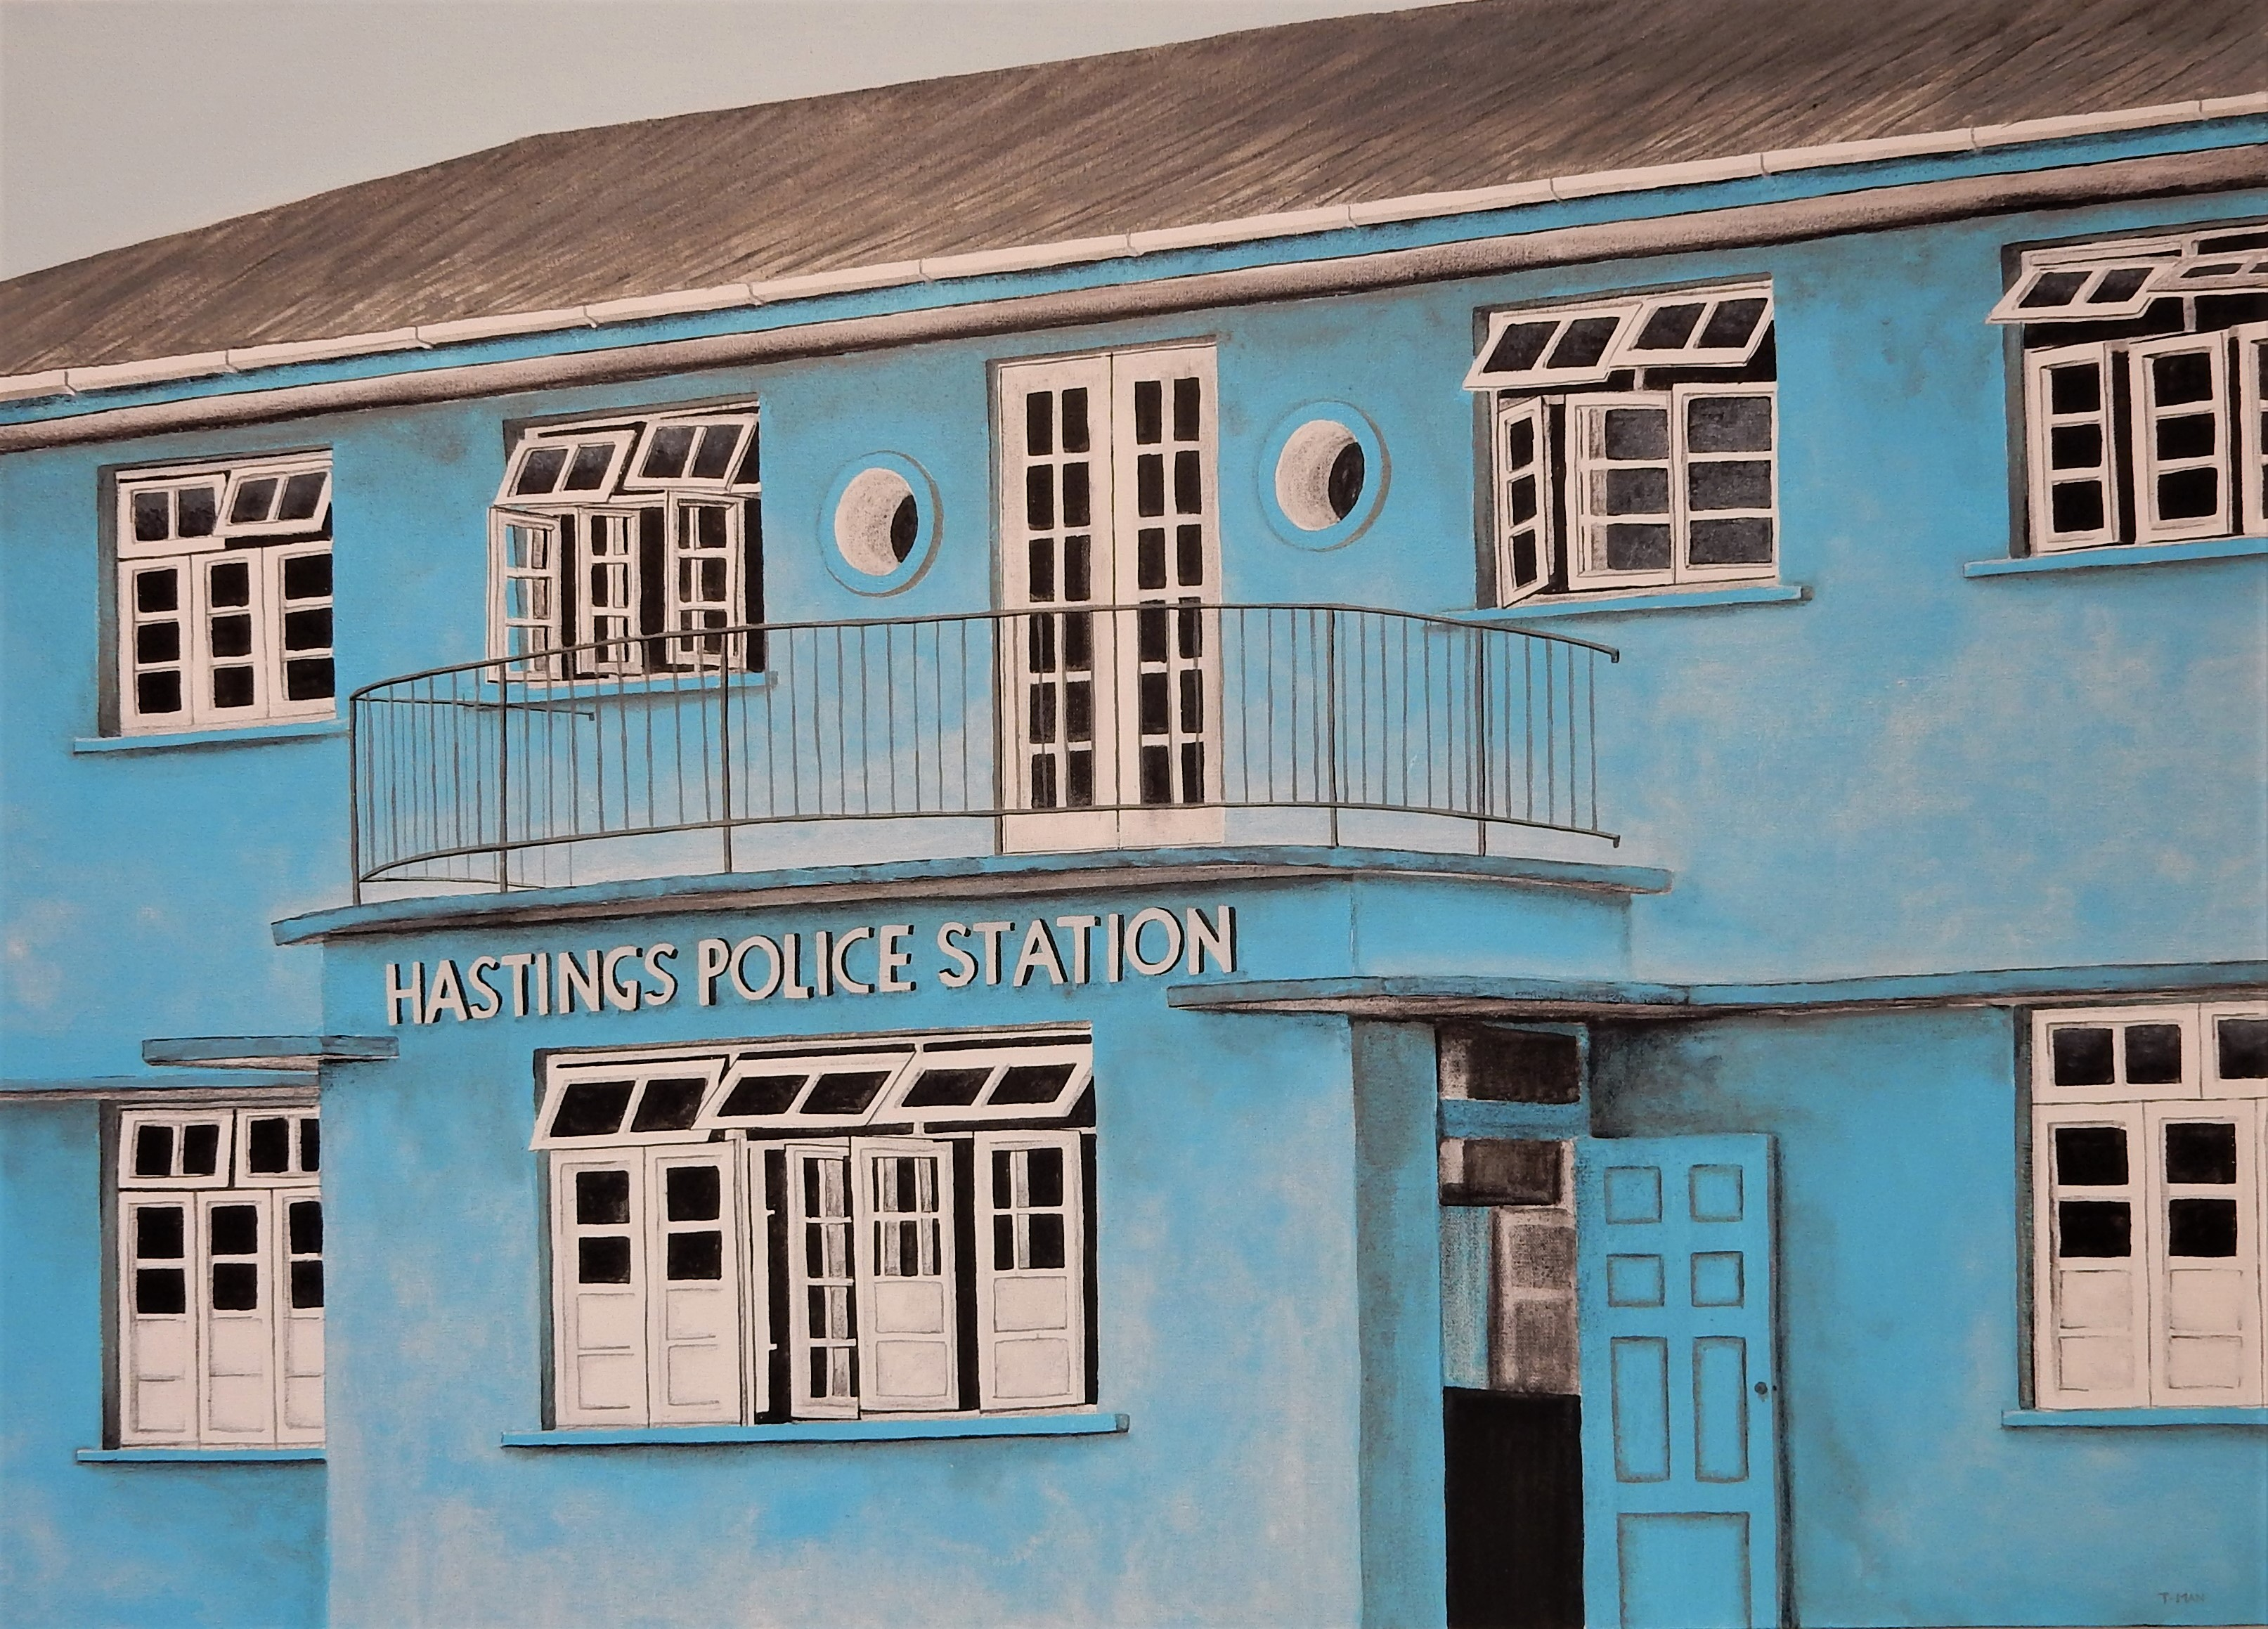 Hastings Police Station